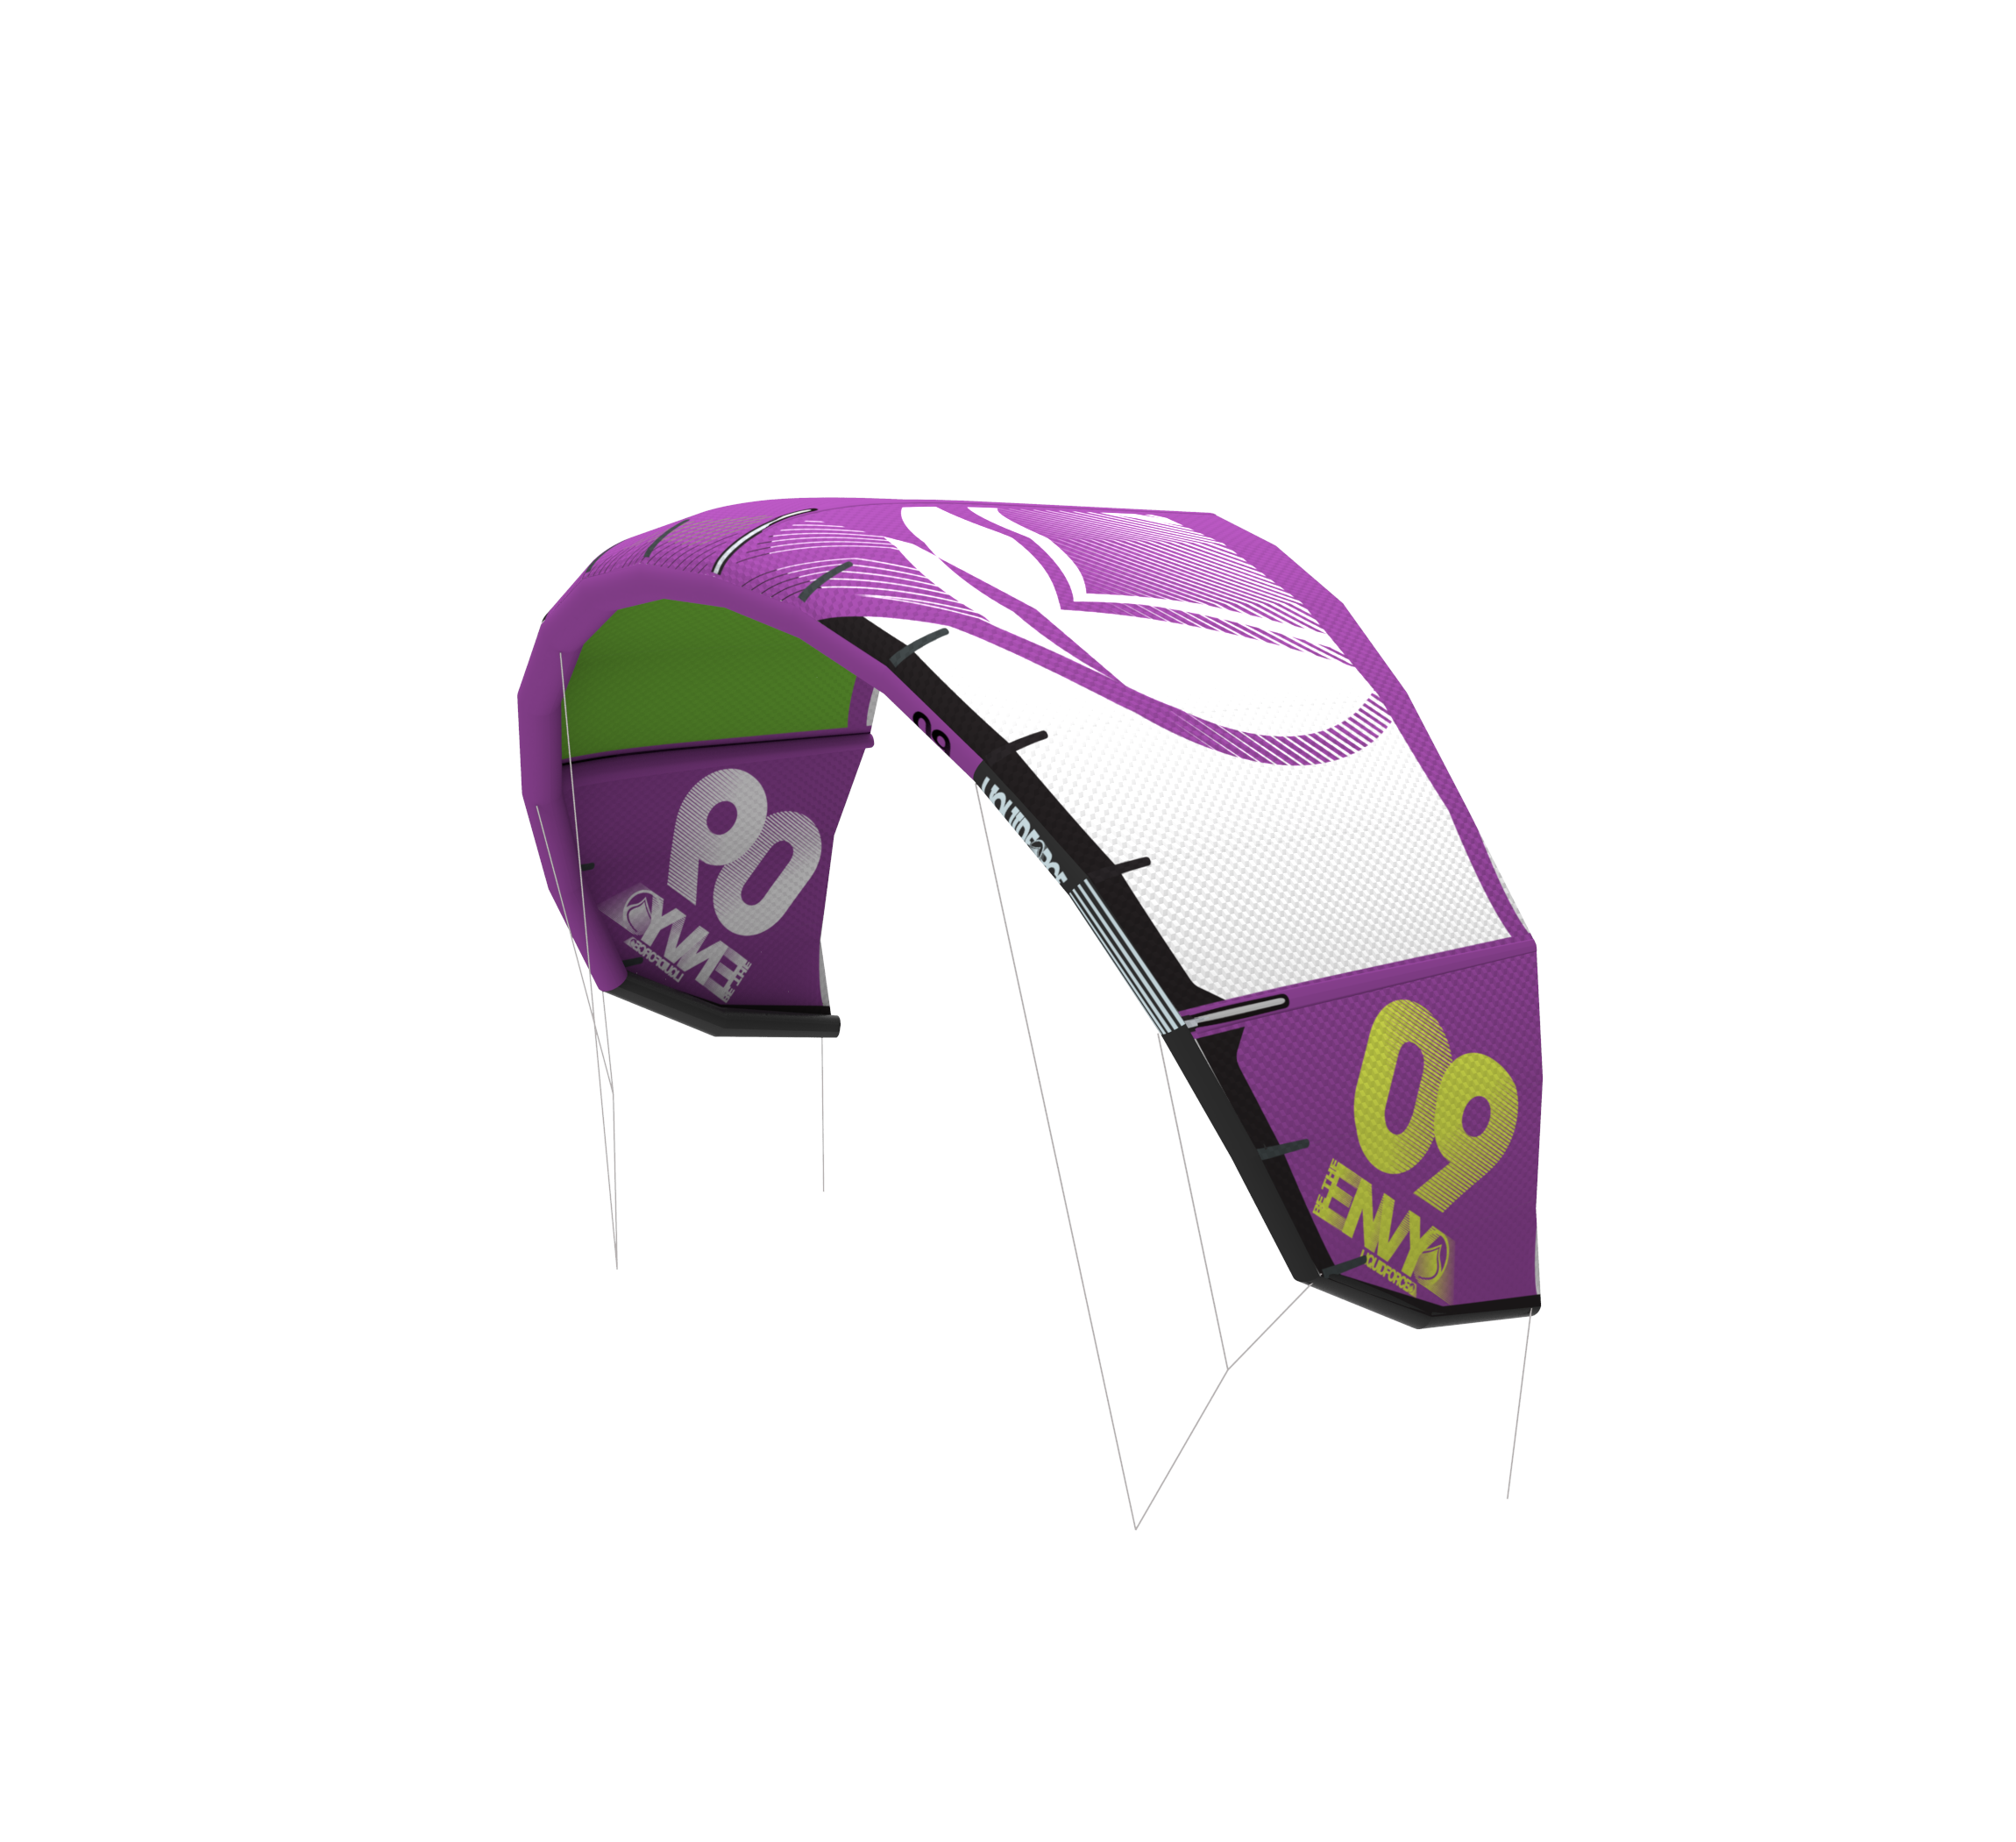 Envy with Final Bridle.297.png